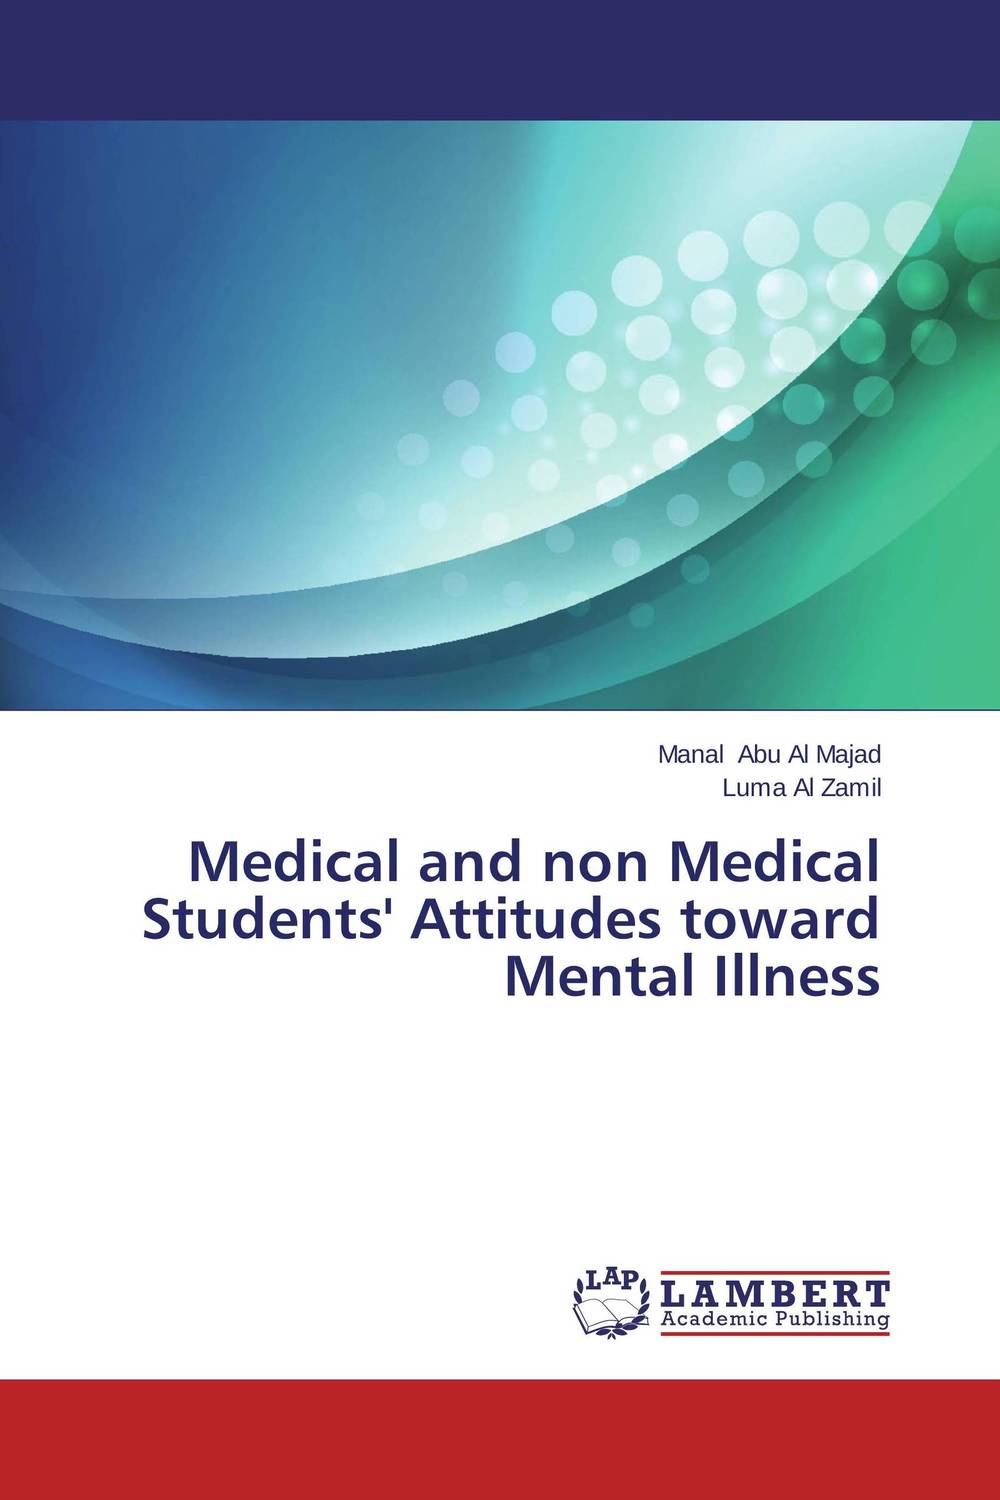 Medical and non Medical  Students' Attitudes toward Mental Illness abdullah alzahrani and hamid osman attitudes of medical students regarding fm as a career choice